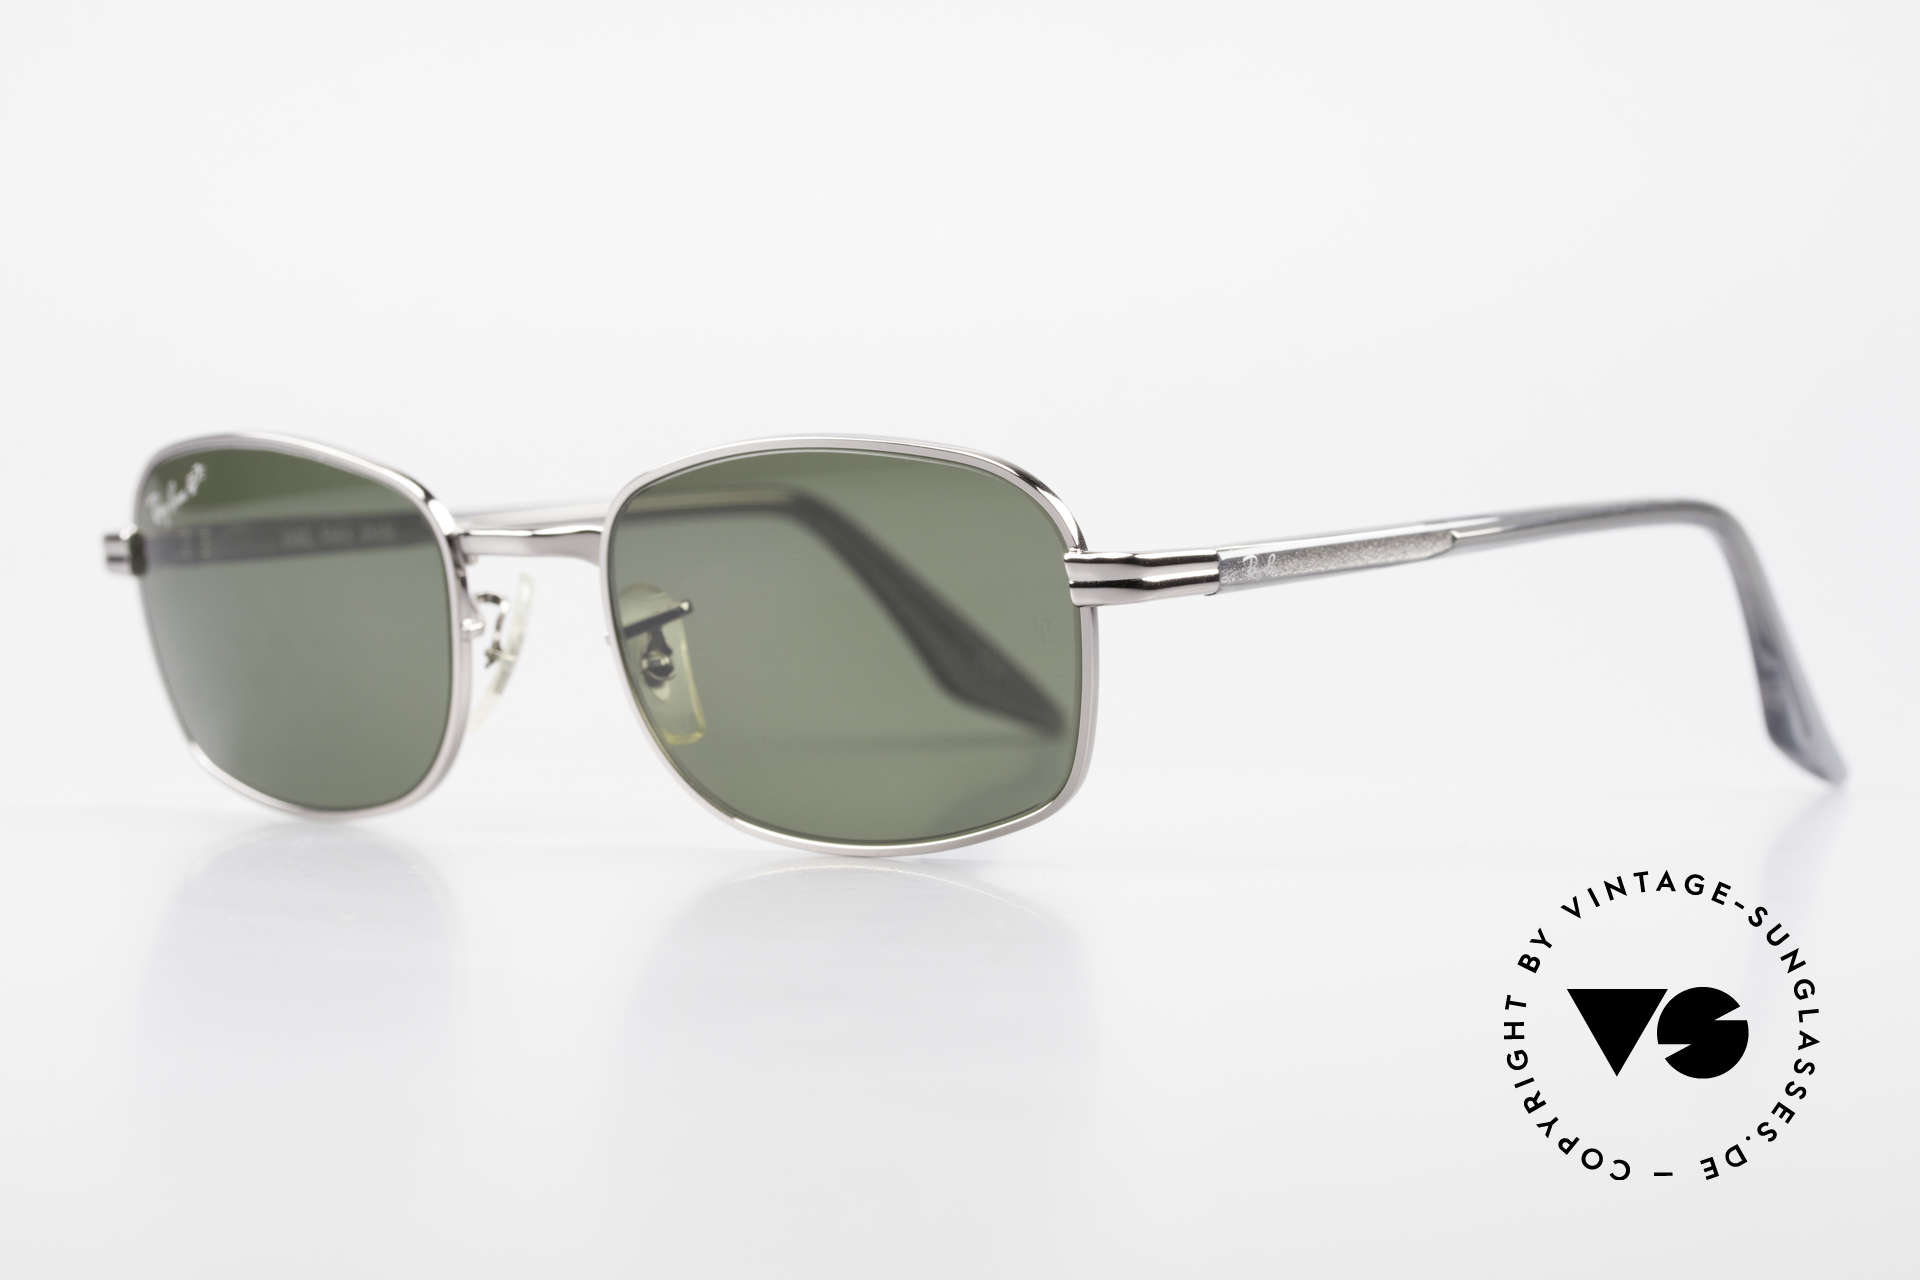 """Ray Ban Sidestreet Crosswalk Square Polarized B&L Shades, in 1999, B&L sold the brand """"RAY-BAN"""" to Luxottica, Made for Men"""